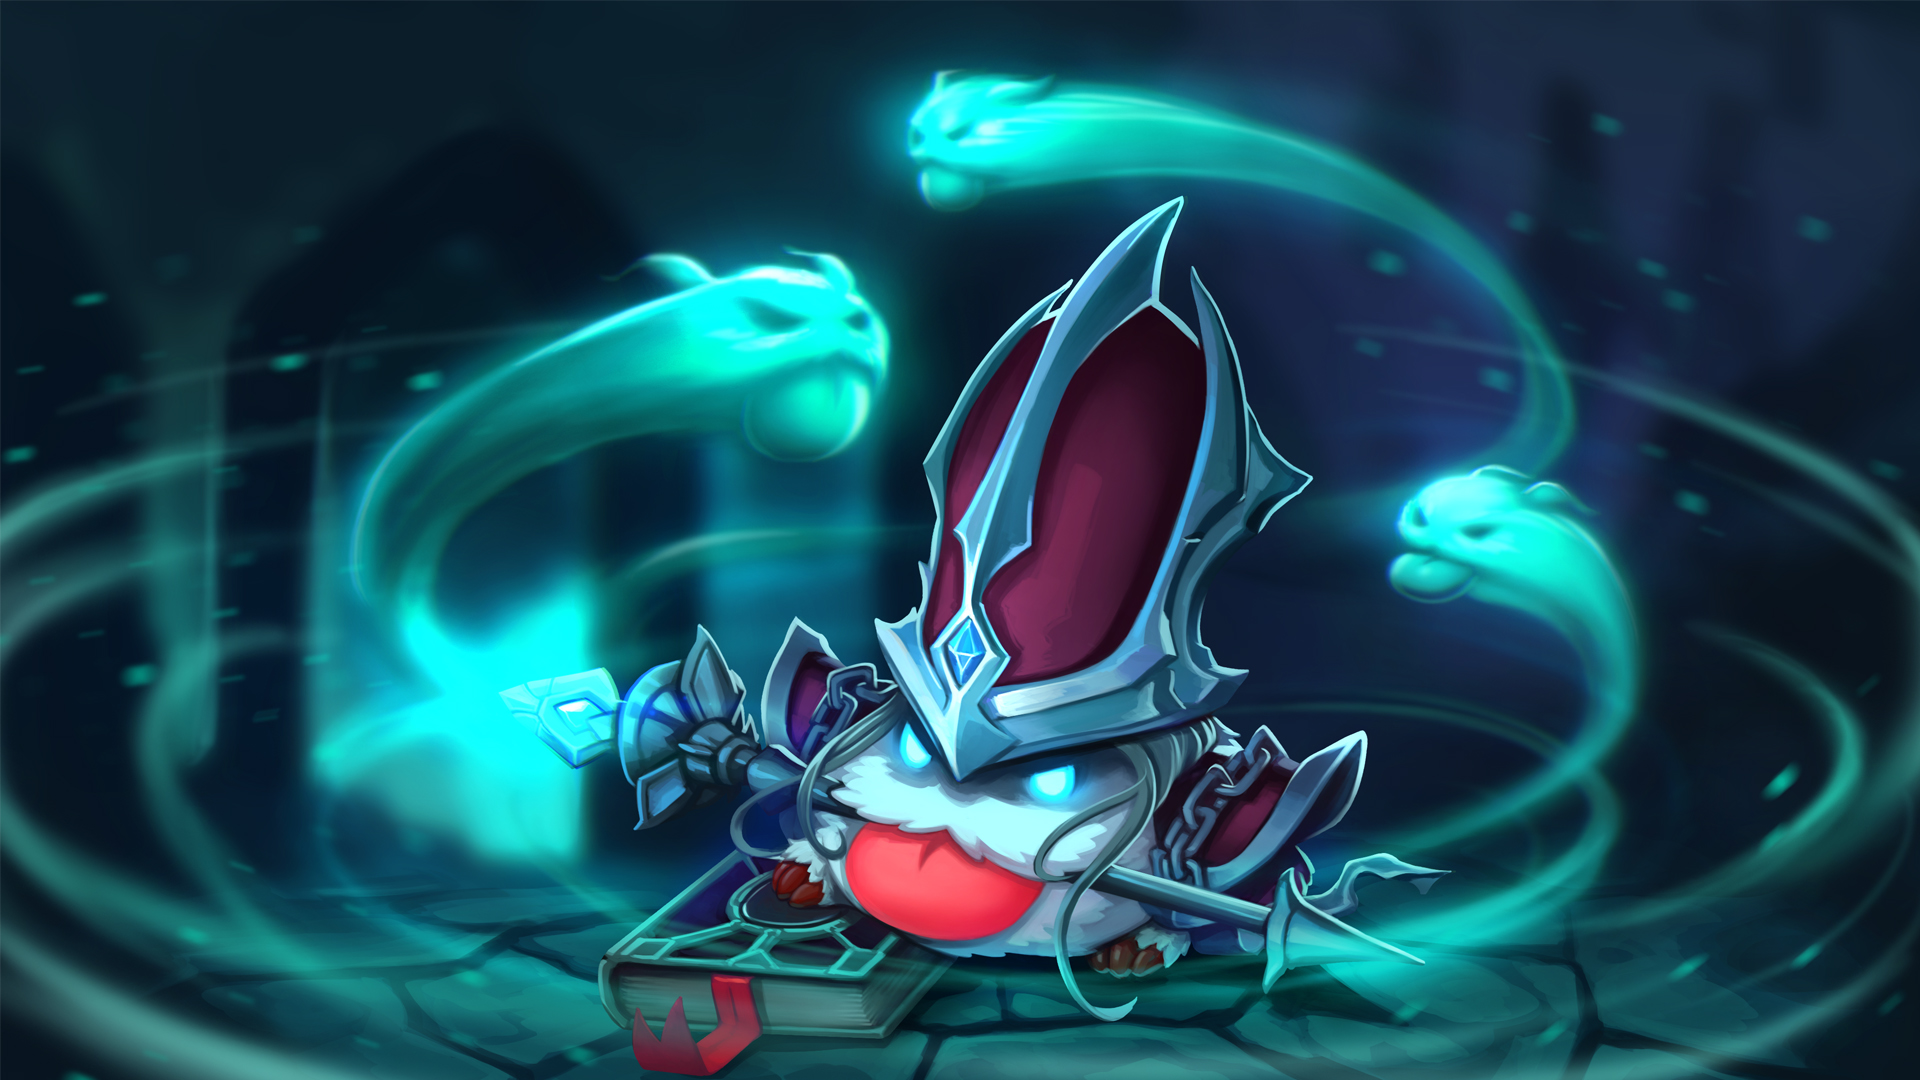 Karthus Poro wallpaper